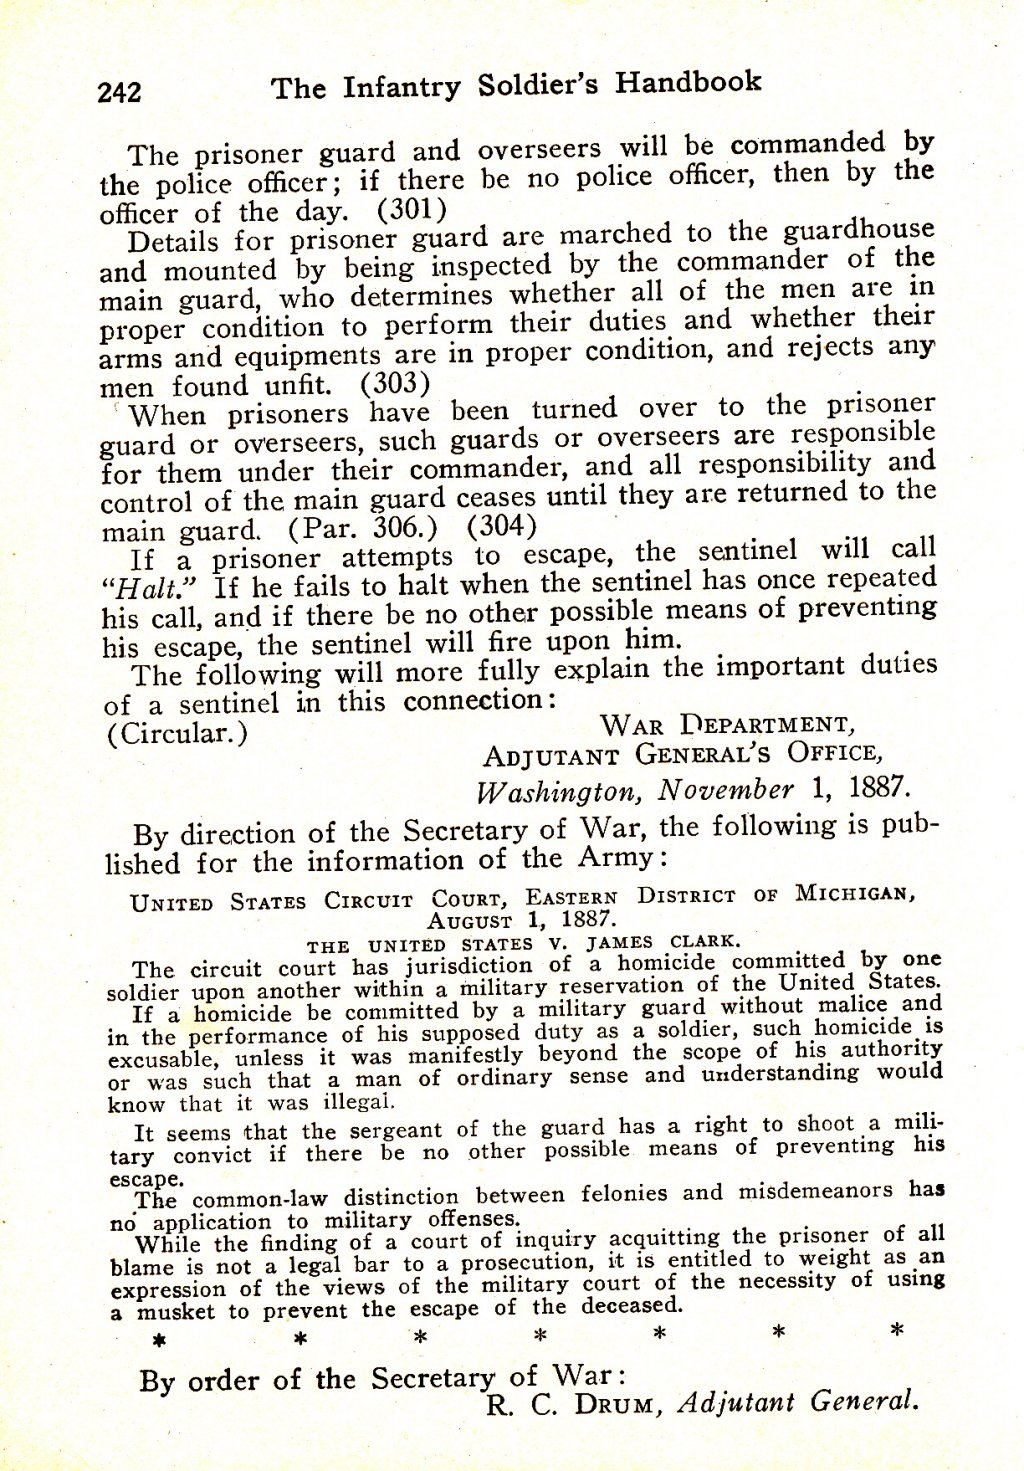 314th Infantry Regiment - Infantry Soldiers Handbook - Waldron - Page 242